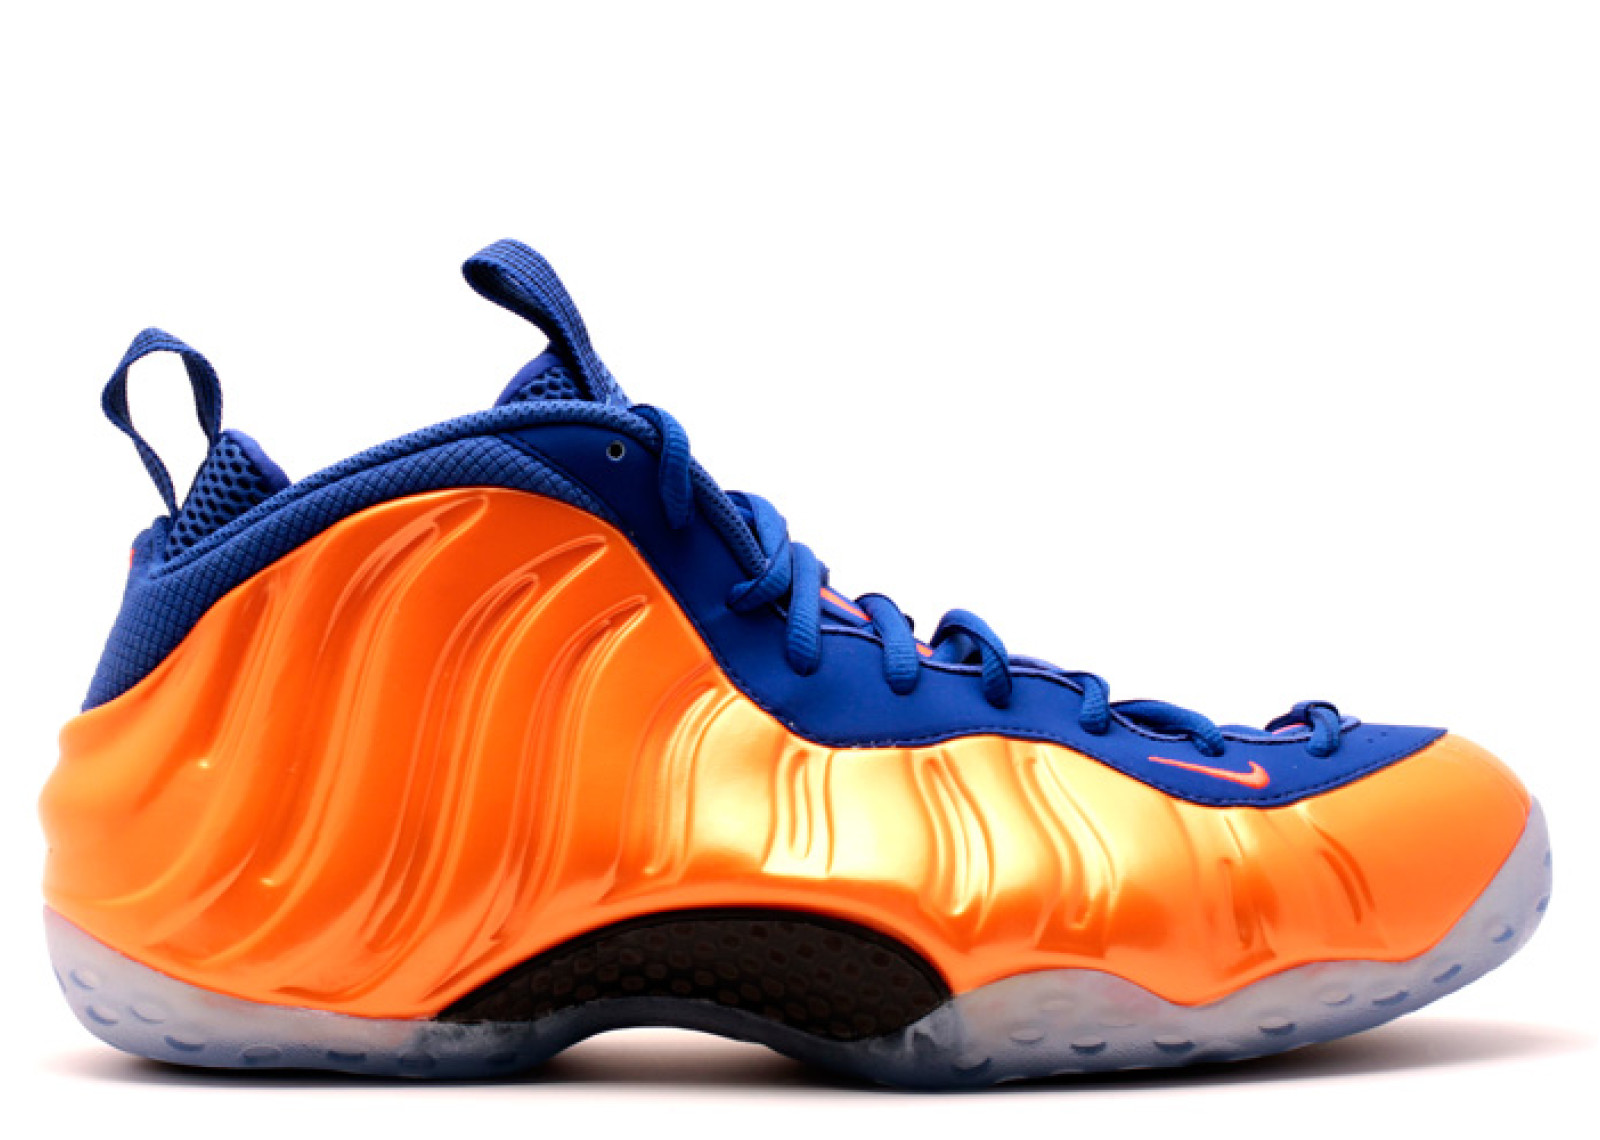 d8746d5fe4a ... germany nike nike air foamposite one knicks mens basketball shoes  314996 801 size 9.5 walmart 5bfc6